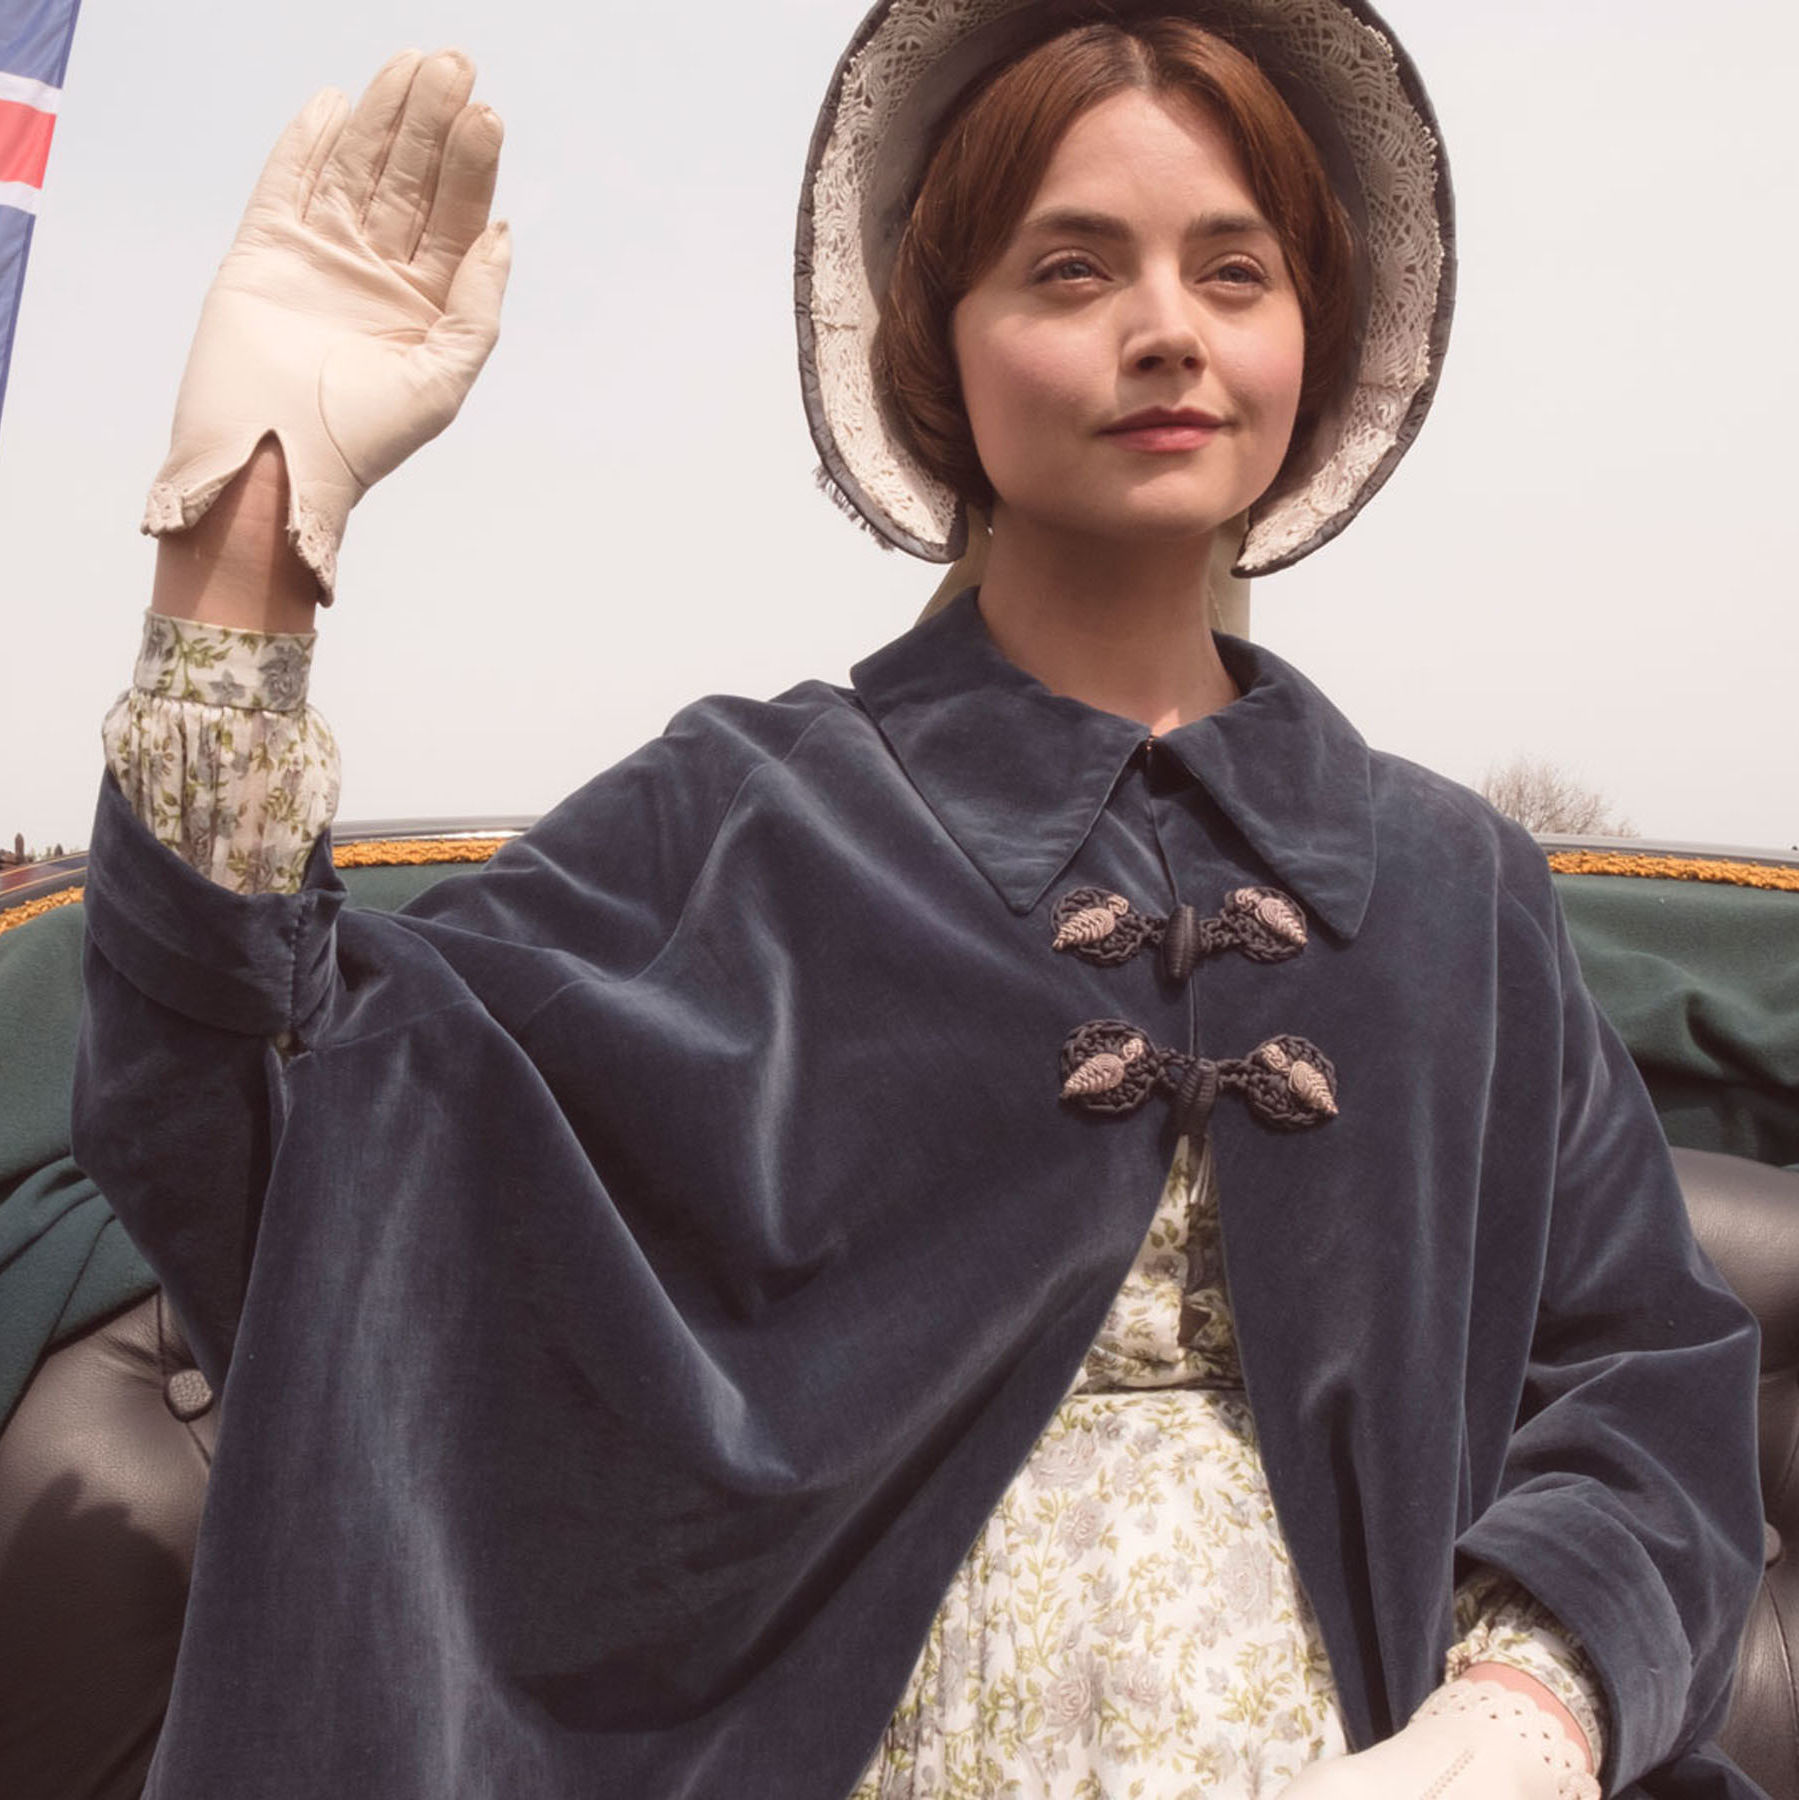 Jenna coleman as queen victoria  image courtesy of pbs   2 jvhfjc